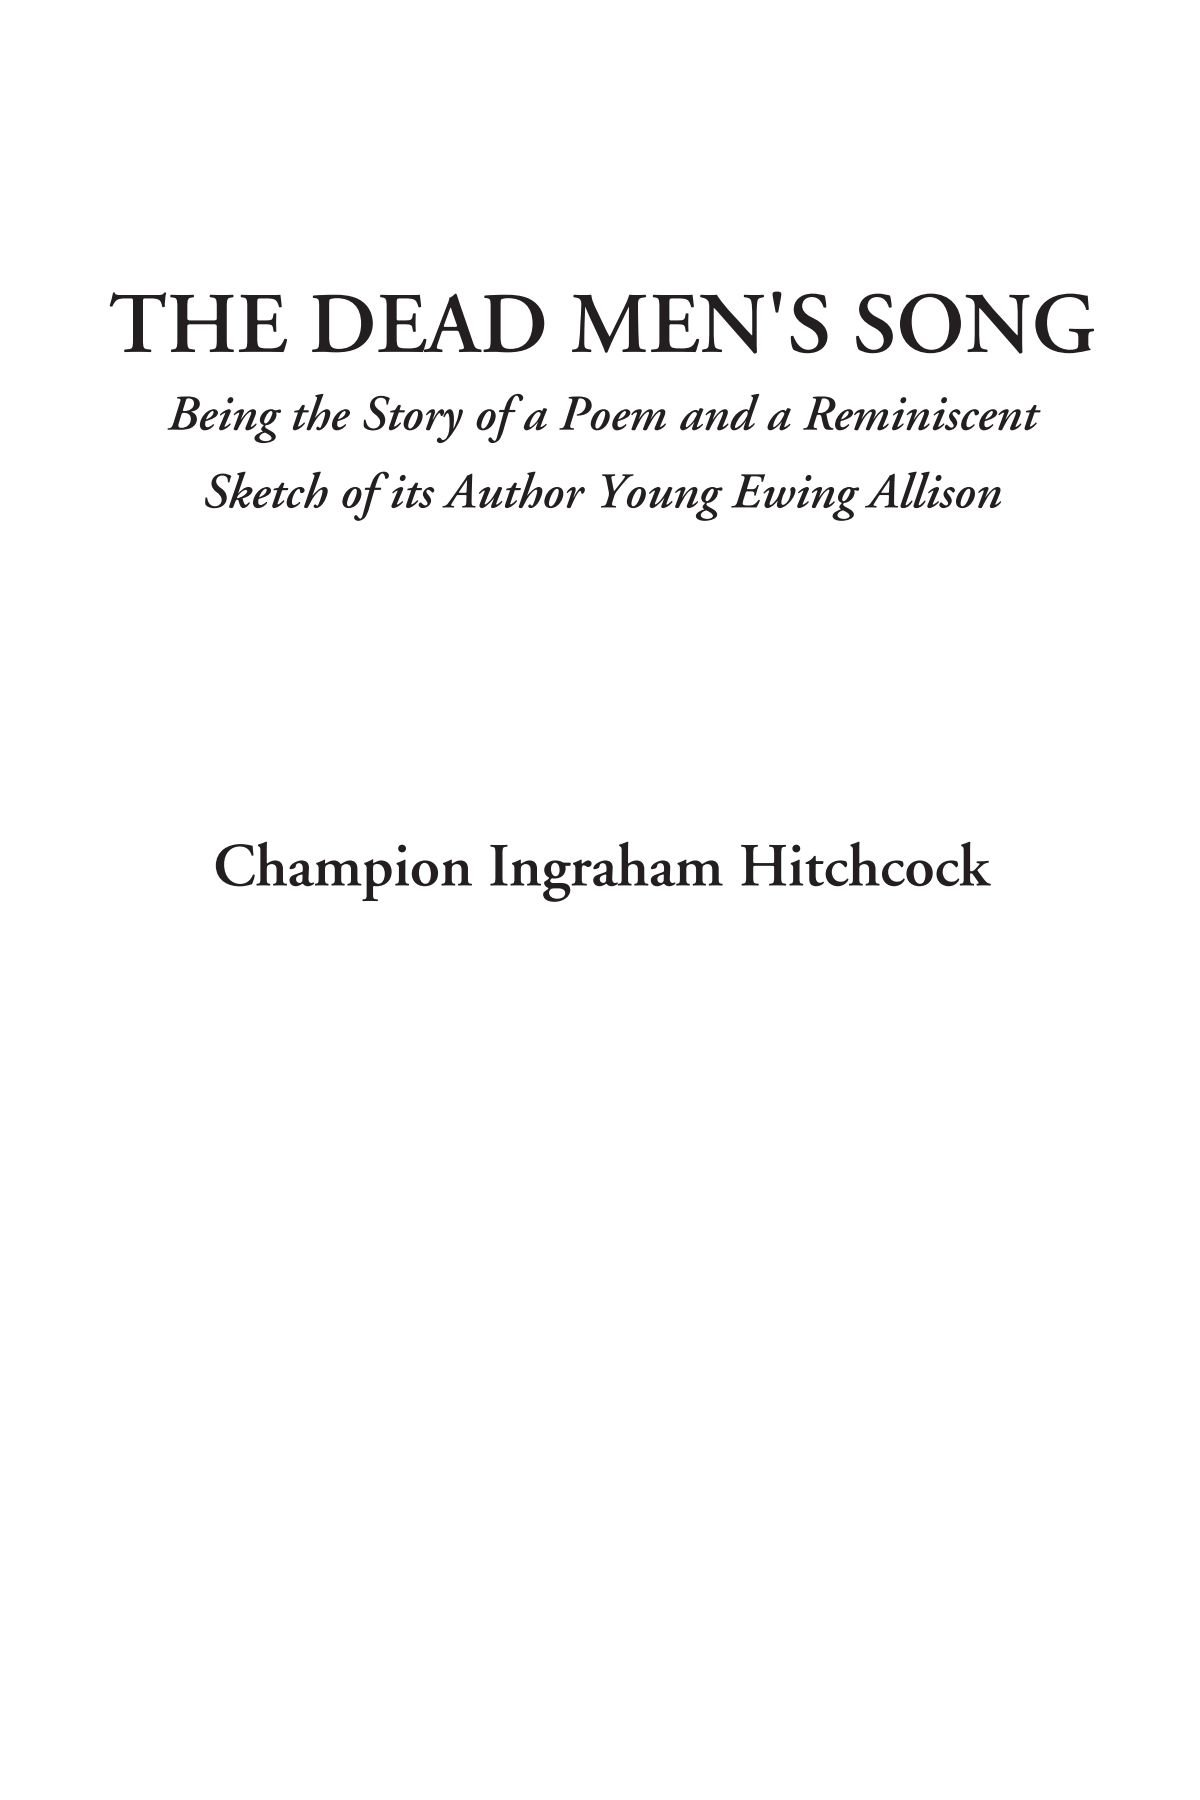 Download The Dead Men's Song (Being the Story of a Poem and a Reminiscent Sketch of its Author Young Ewing Allison) ebook